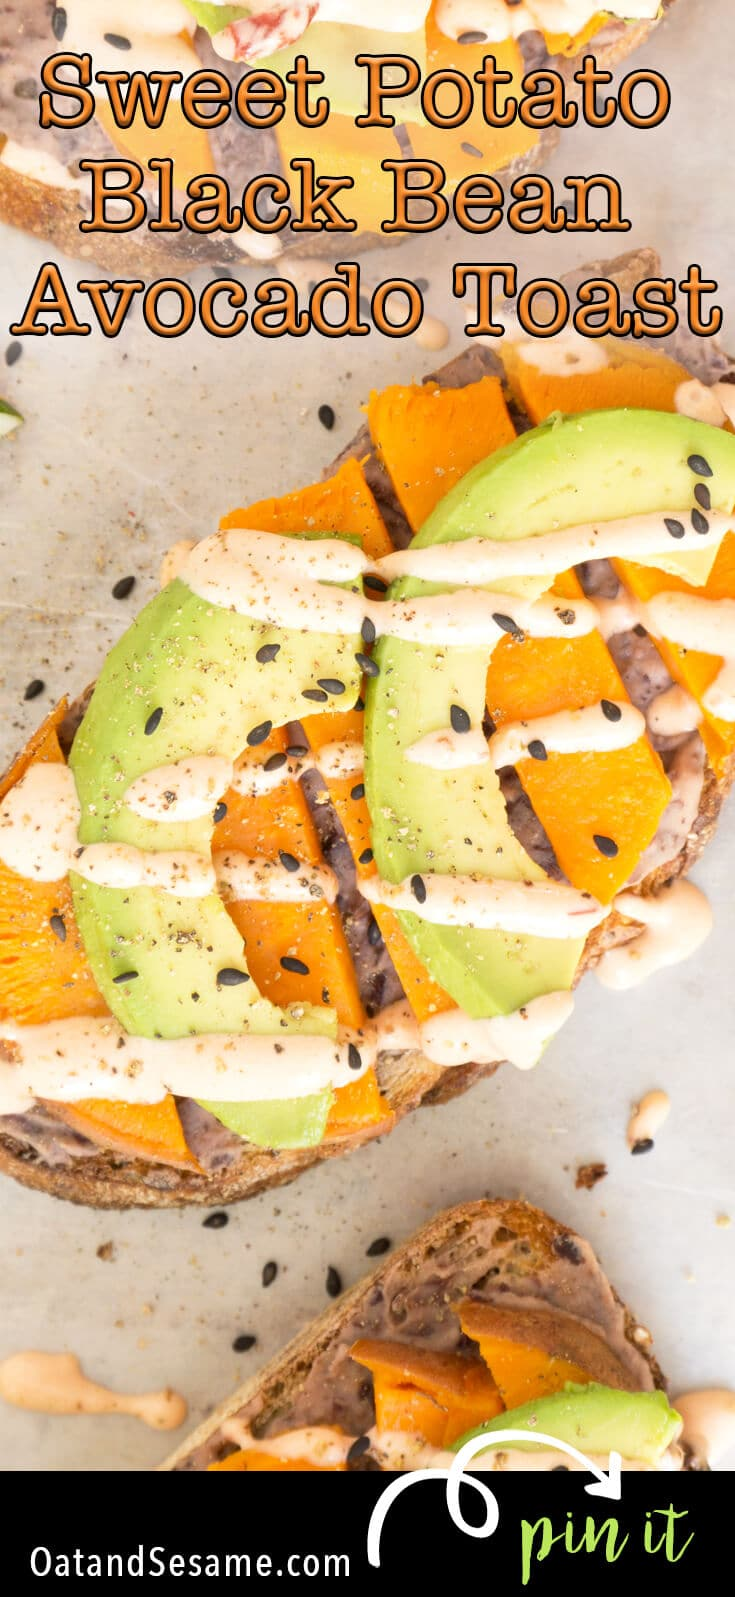 Sweet Potato Black Bean Avocado Toast combines a simple black bean spread, slices of baked sweet potato and avocado - topped with a spicy chipotle aioli. #LUNCH | #AVOCADO | #TOAST | #Recipes at OatandSesame.com